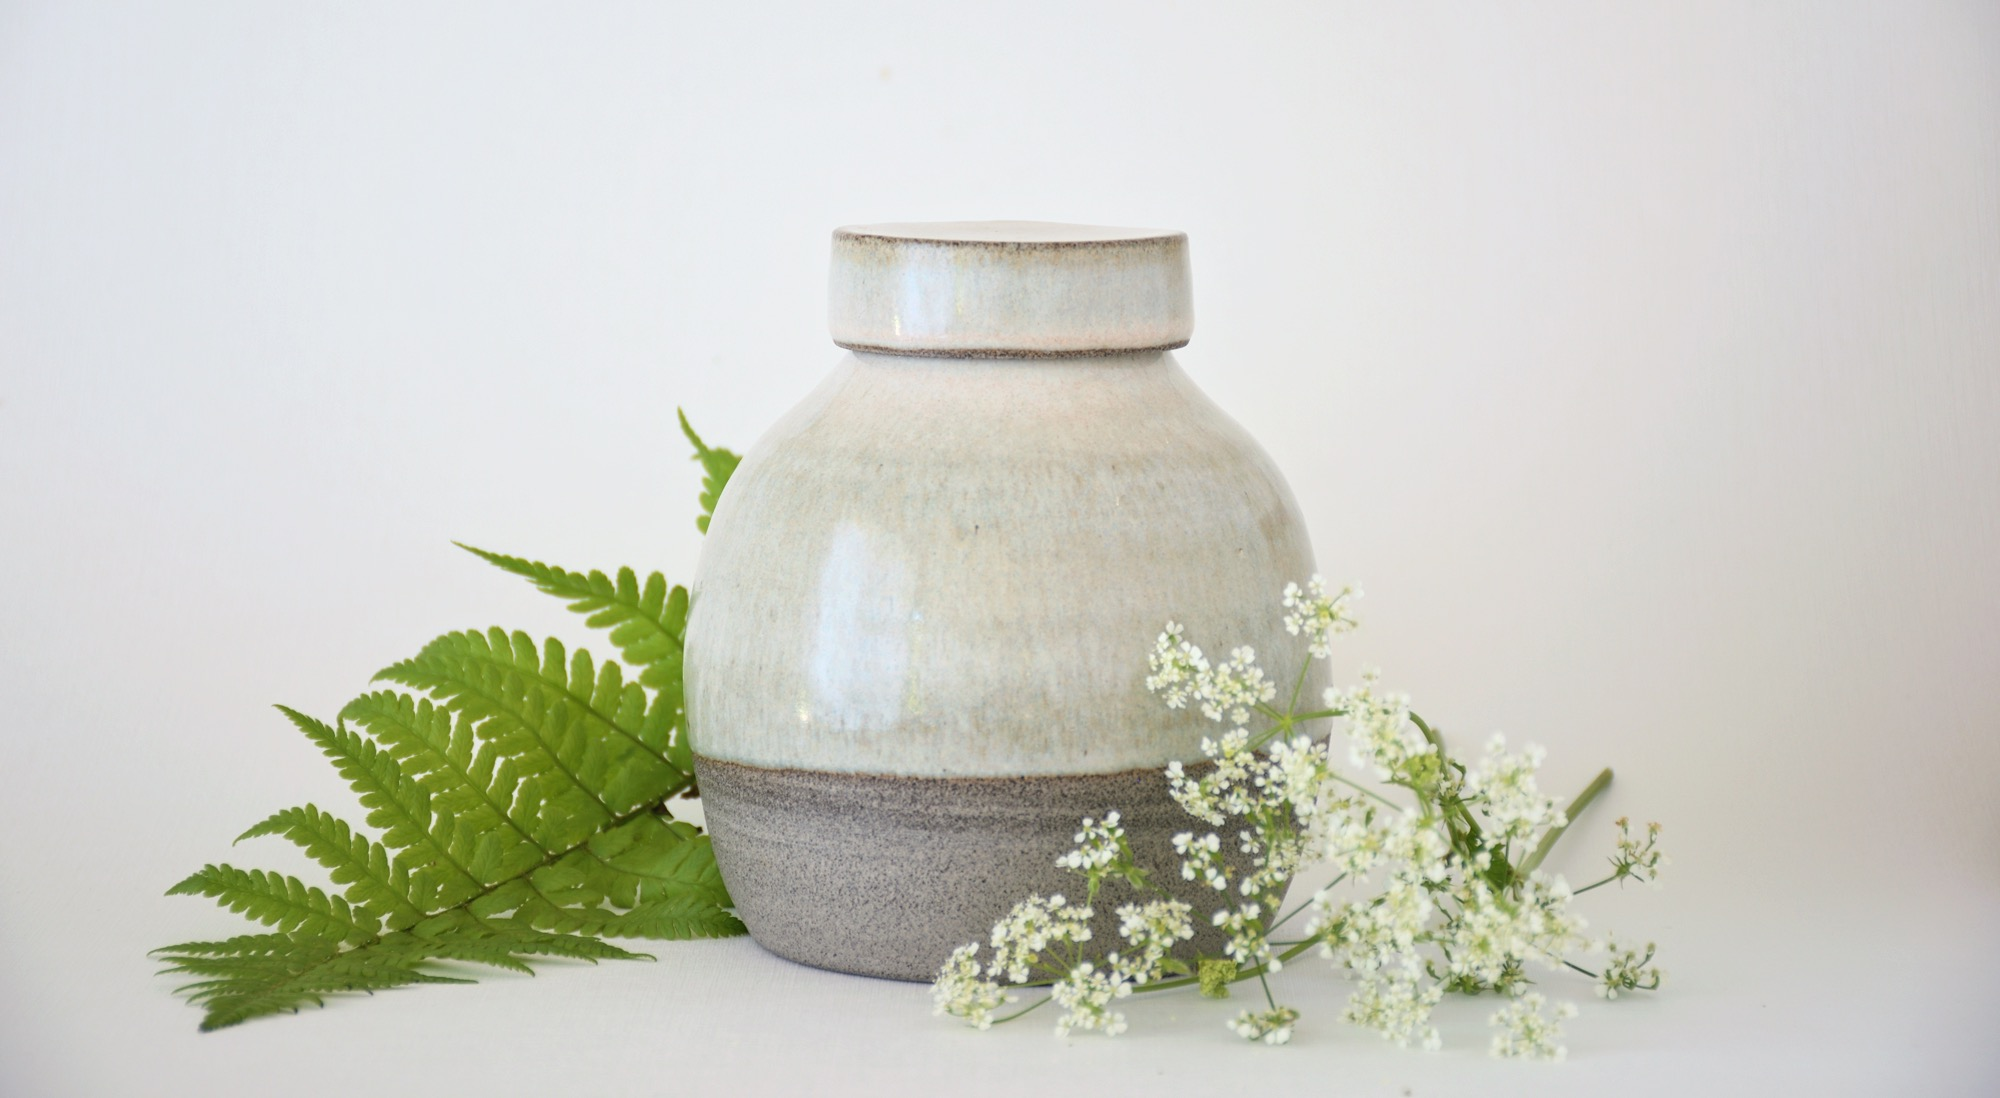 Artemis creates handmade ceramic urns in which you can stylishly preserve and cherish the ashes of a beloved person or pet